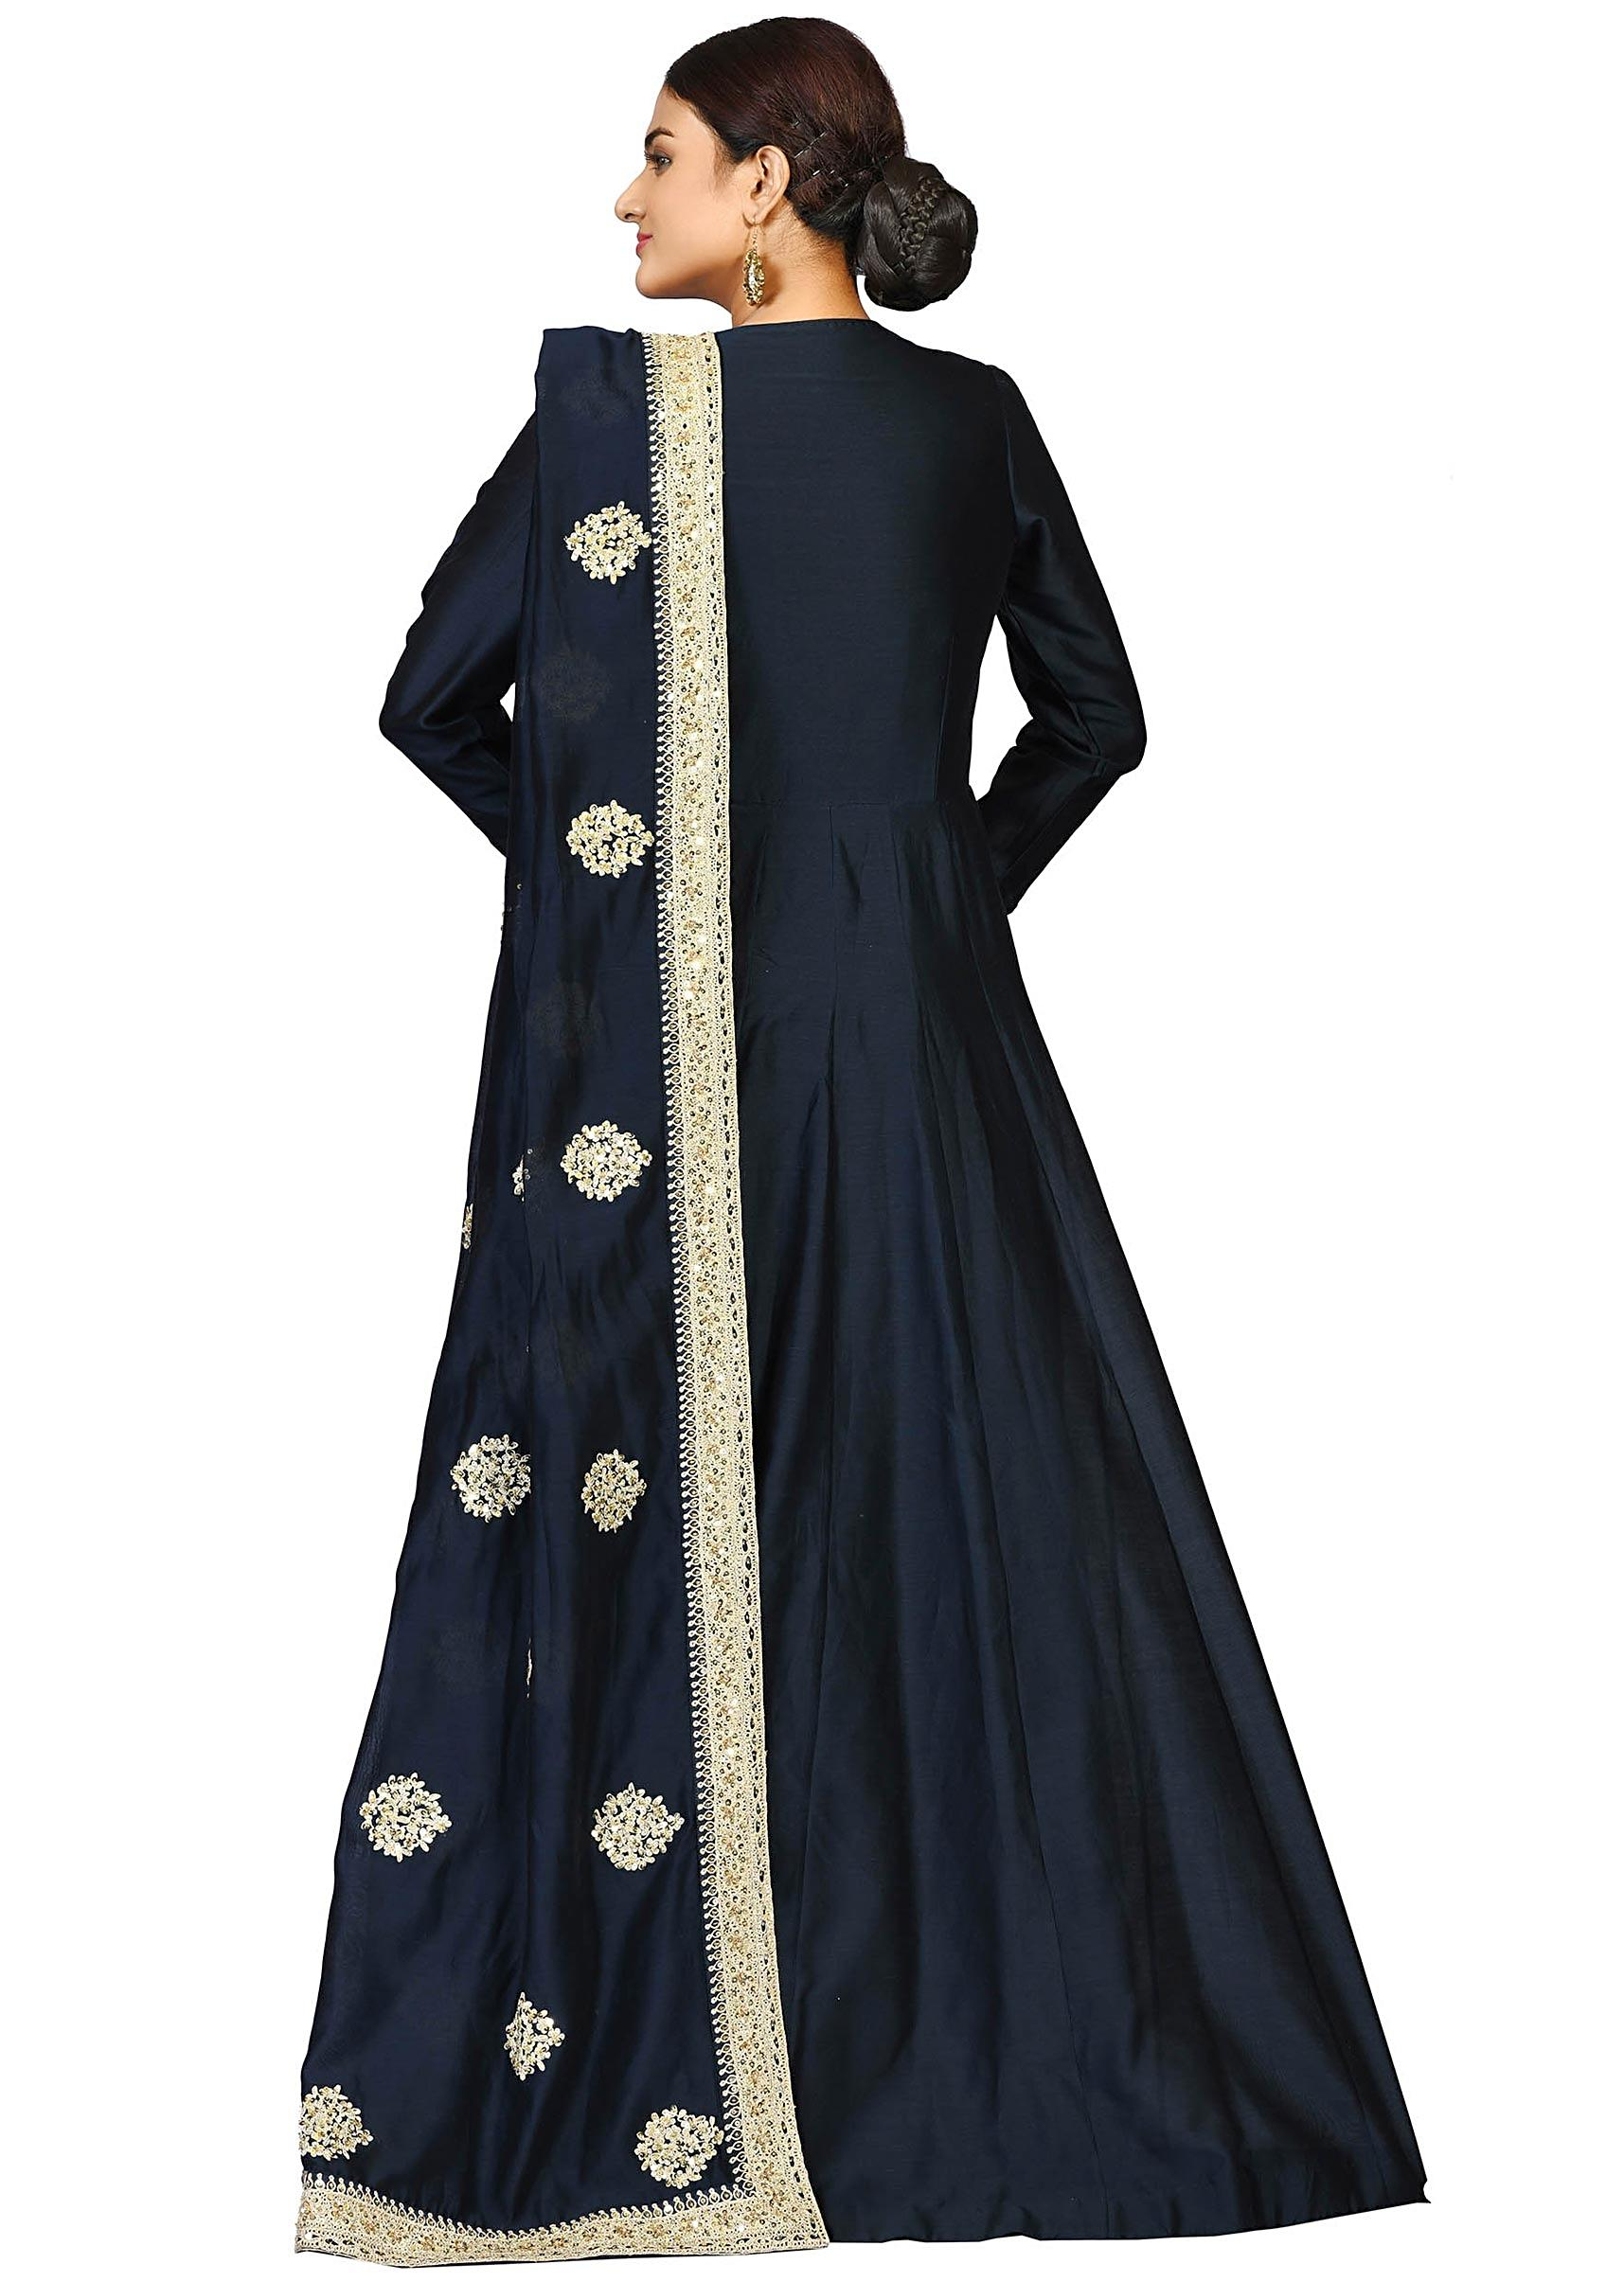 de1c170a73 Navy blue suit in chanderi featuring the flawless zari and sequin work only  on Kalki